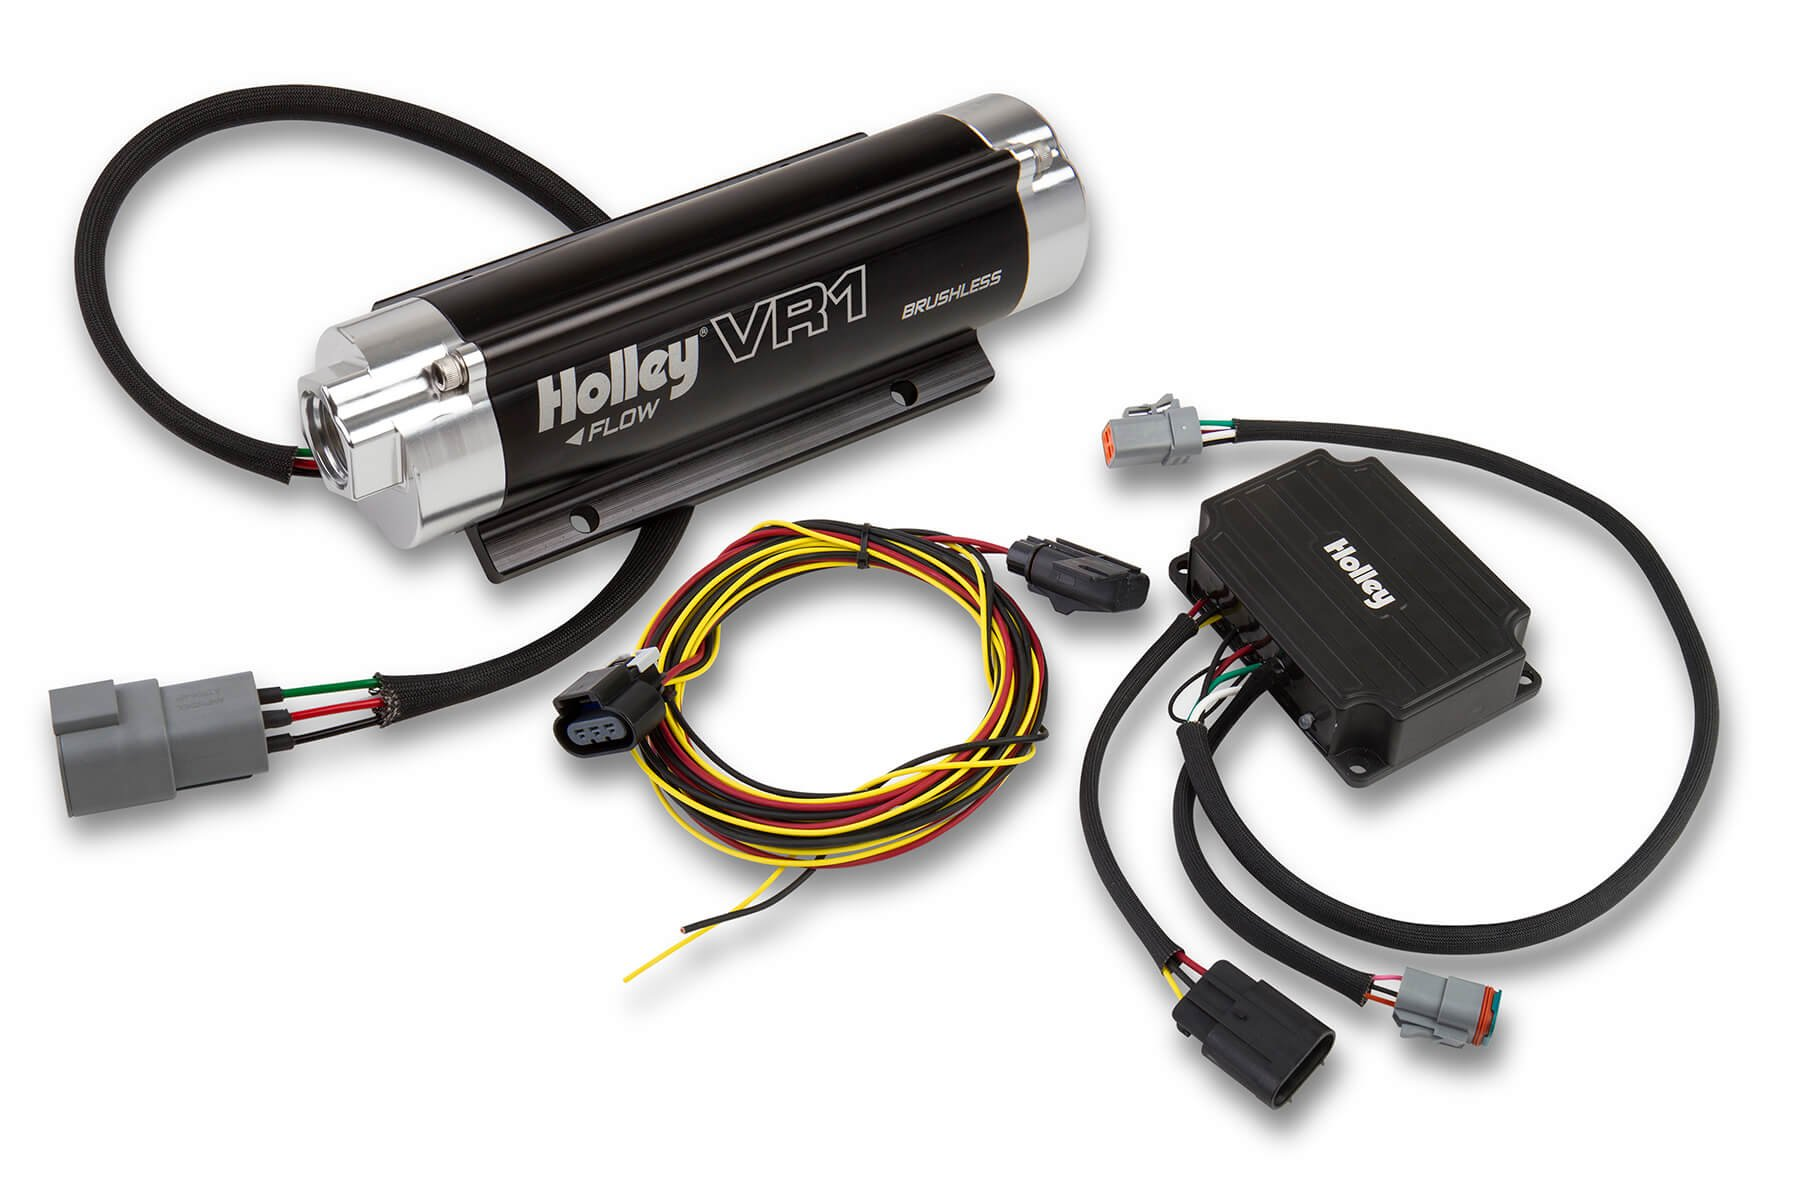 Holley 12-1500 VR1 Series Brushless Fuel Pump w/Controller on hei distributor wiring diagram, battery kill switch wiring diagram, msd distributor wiring diagram, line lock wiring diagram, electric fan wiring diagram,